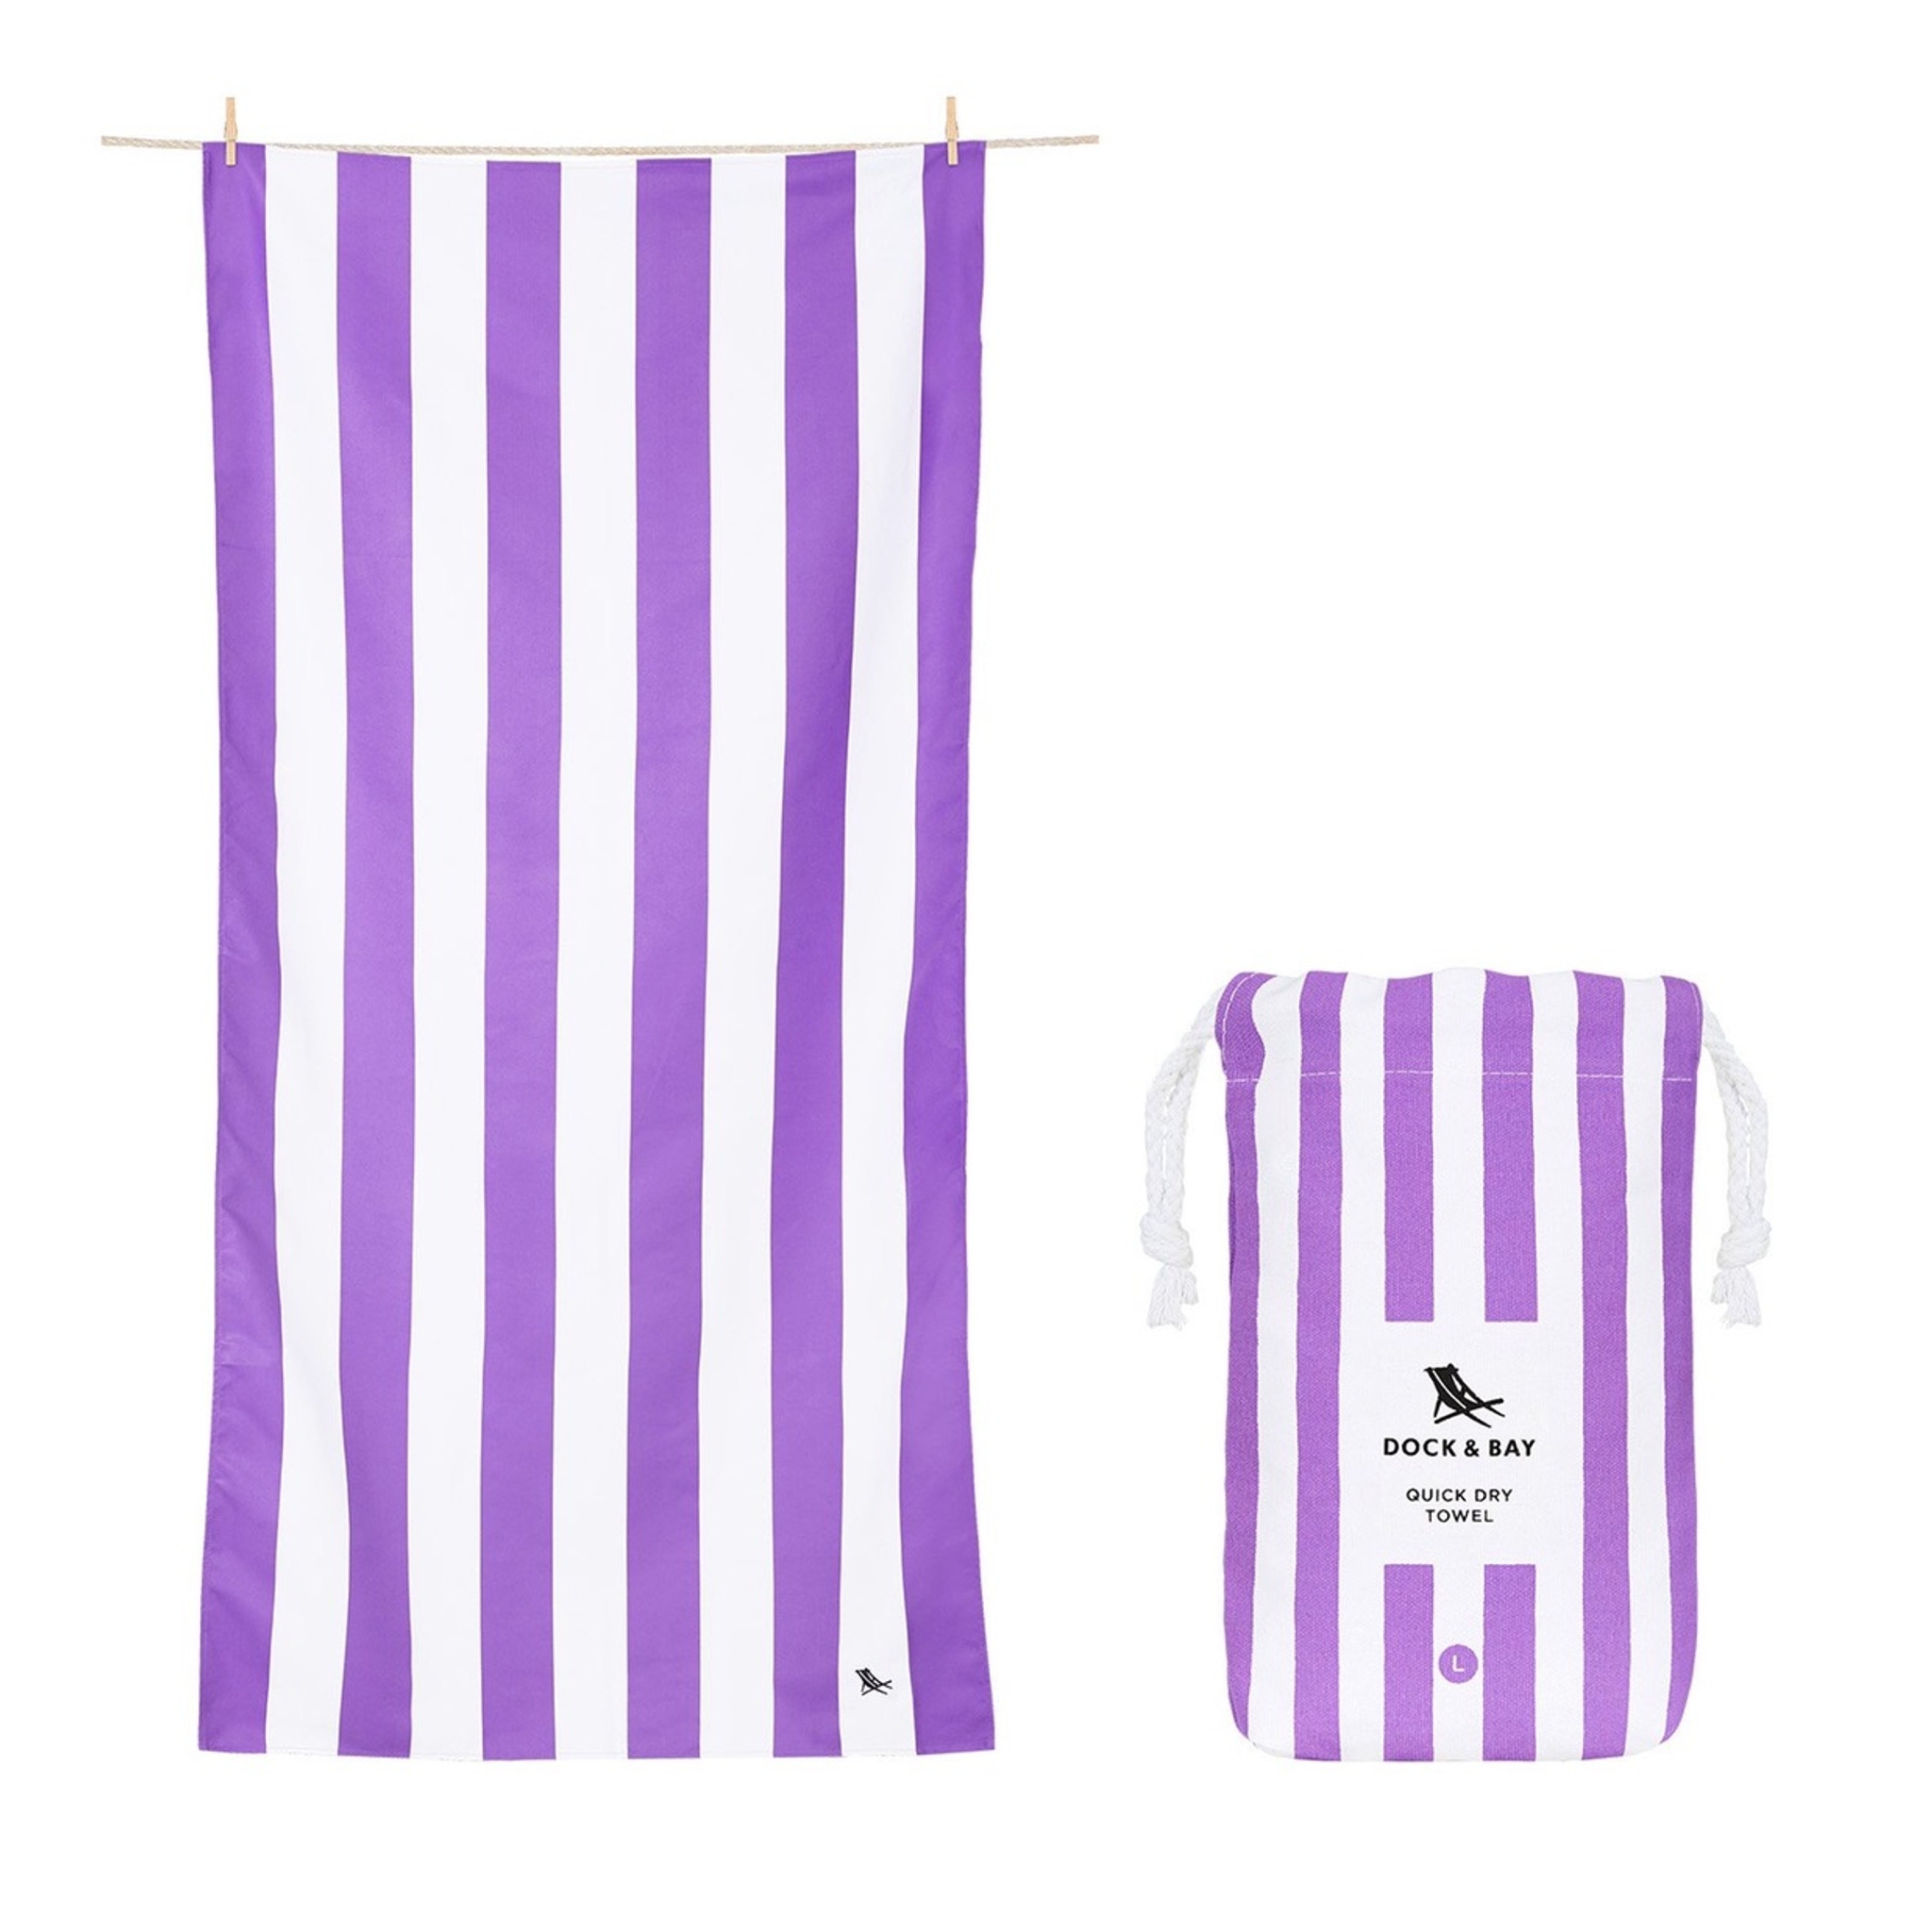 Dock & Bay Quick-Dry XL Towel - Brighton Purple